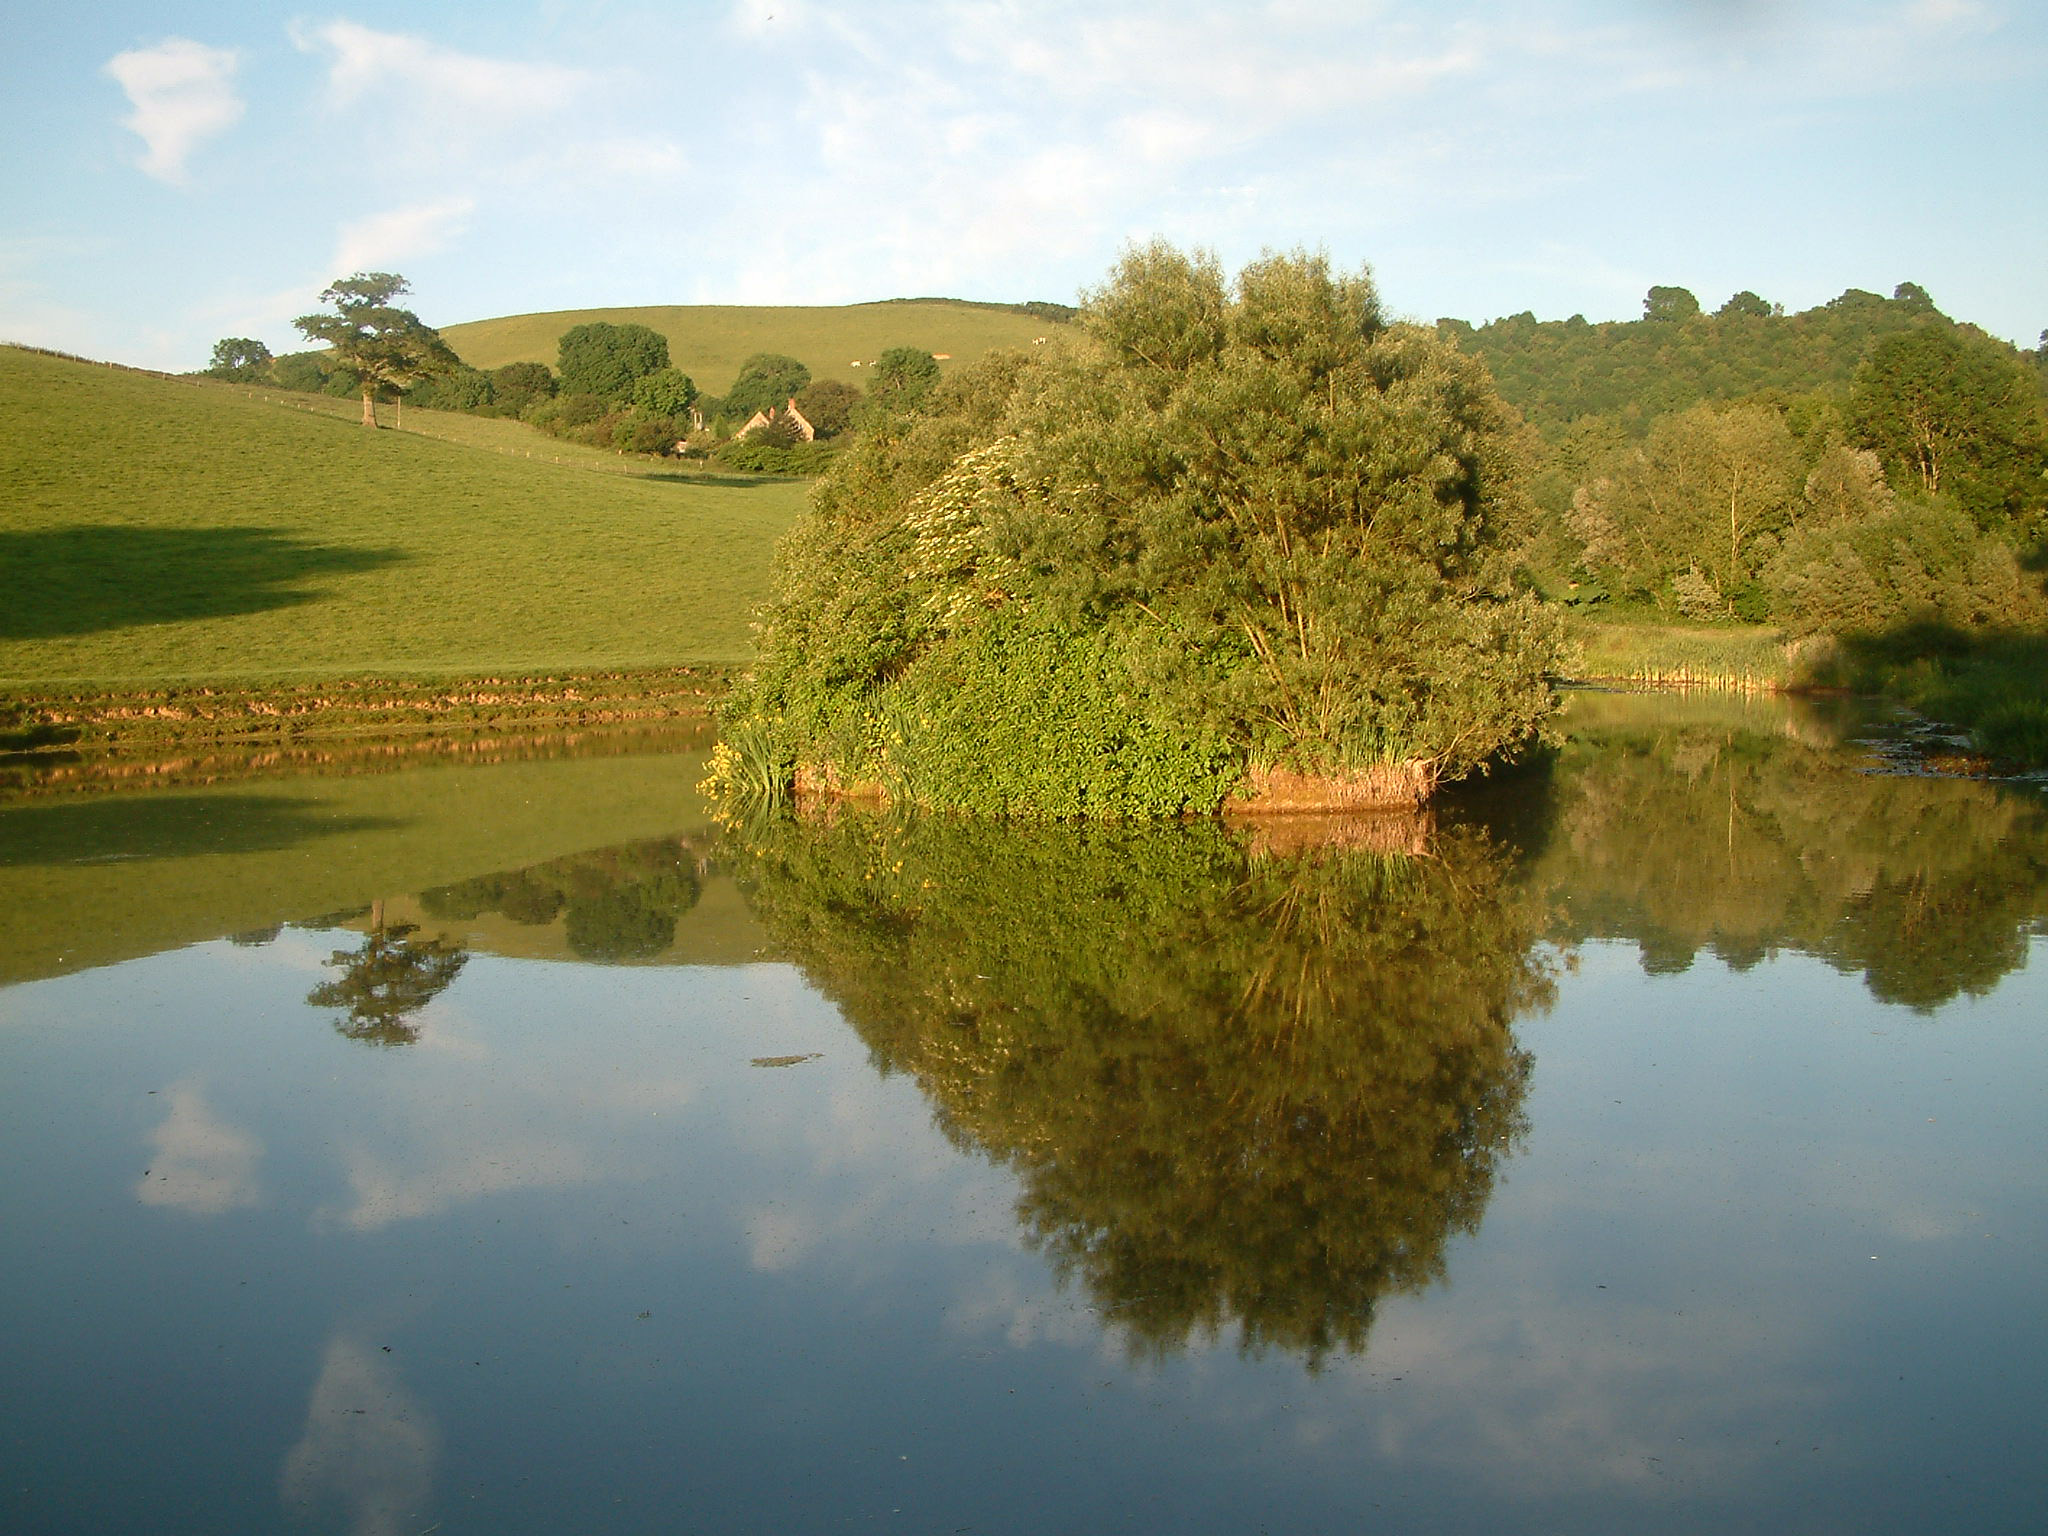 Pond and Serene Landscape with reflections image - Free